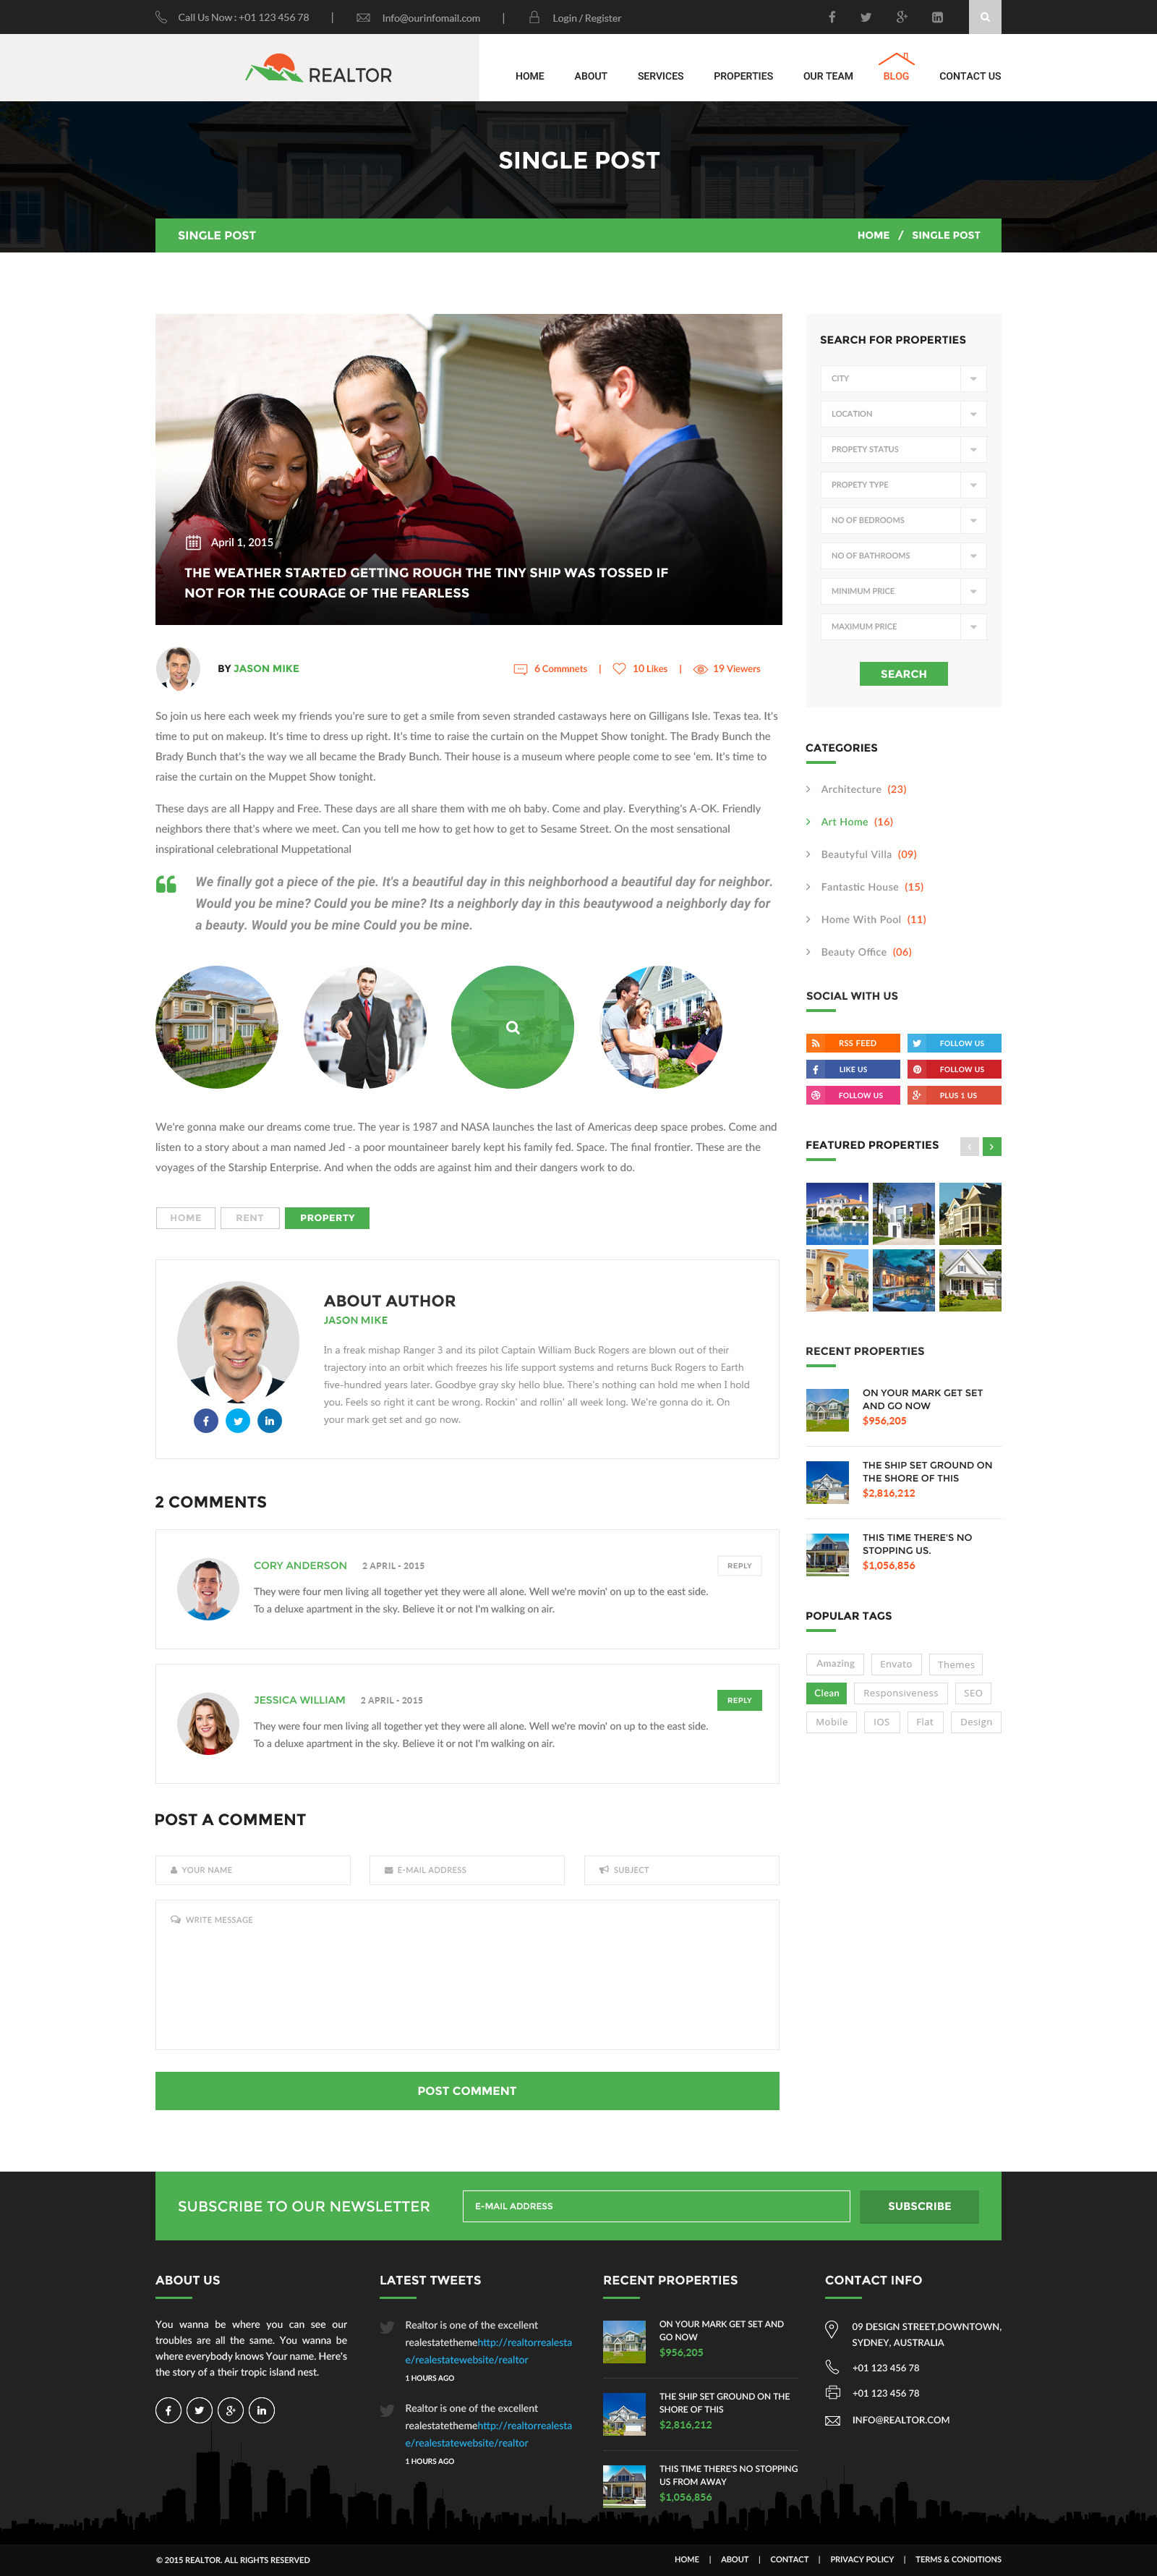 realtor real estate html template by wpmines themeforest screenshots 06 our agents jpg screenshots 07 property listing jpg screenshots 08 blog jpg screenshots 09 property details jpg